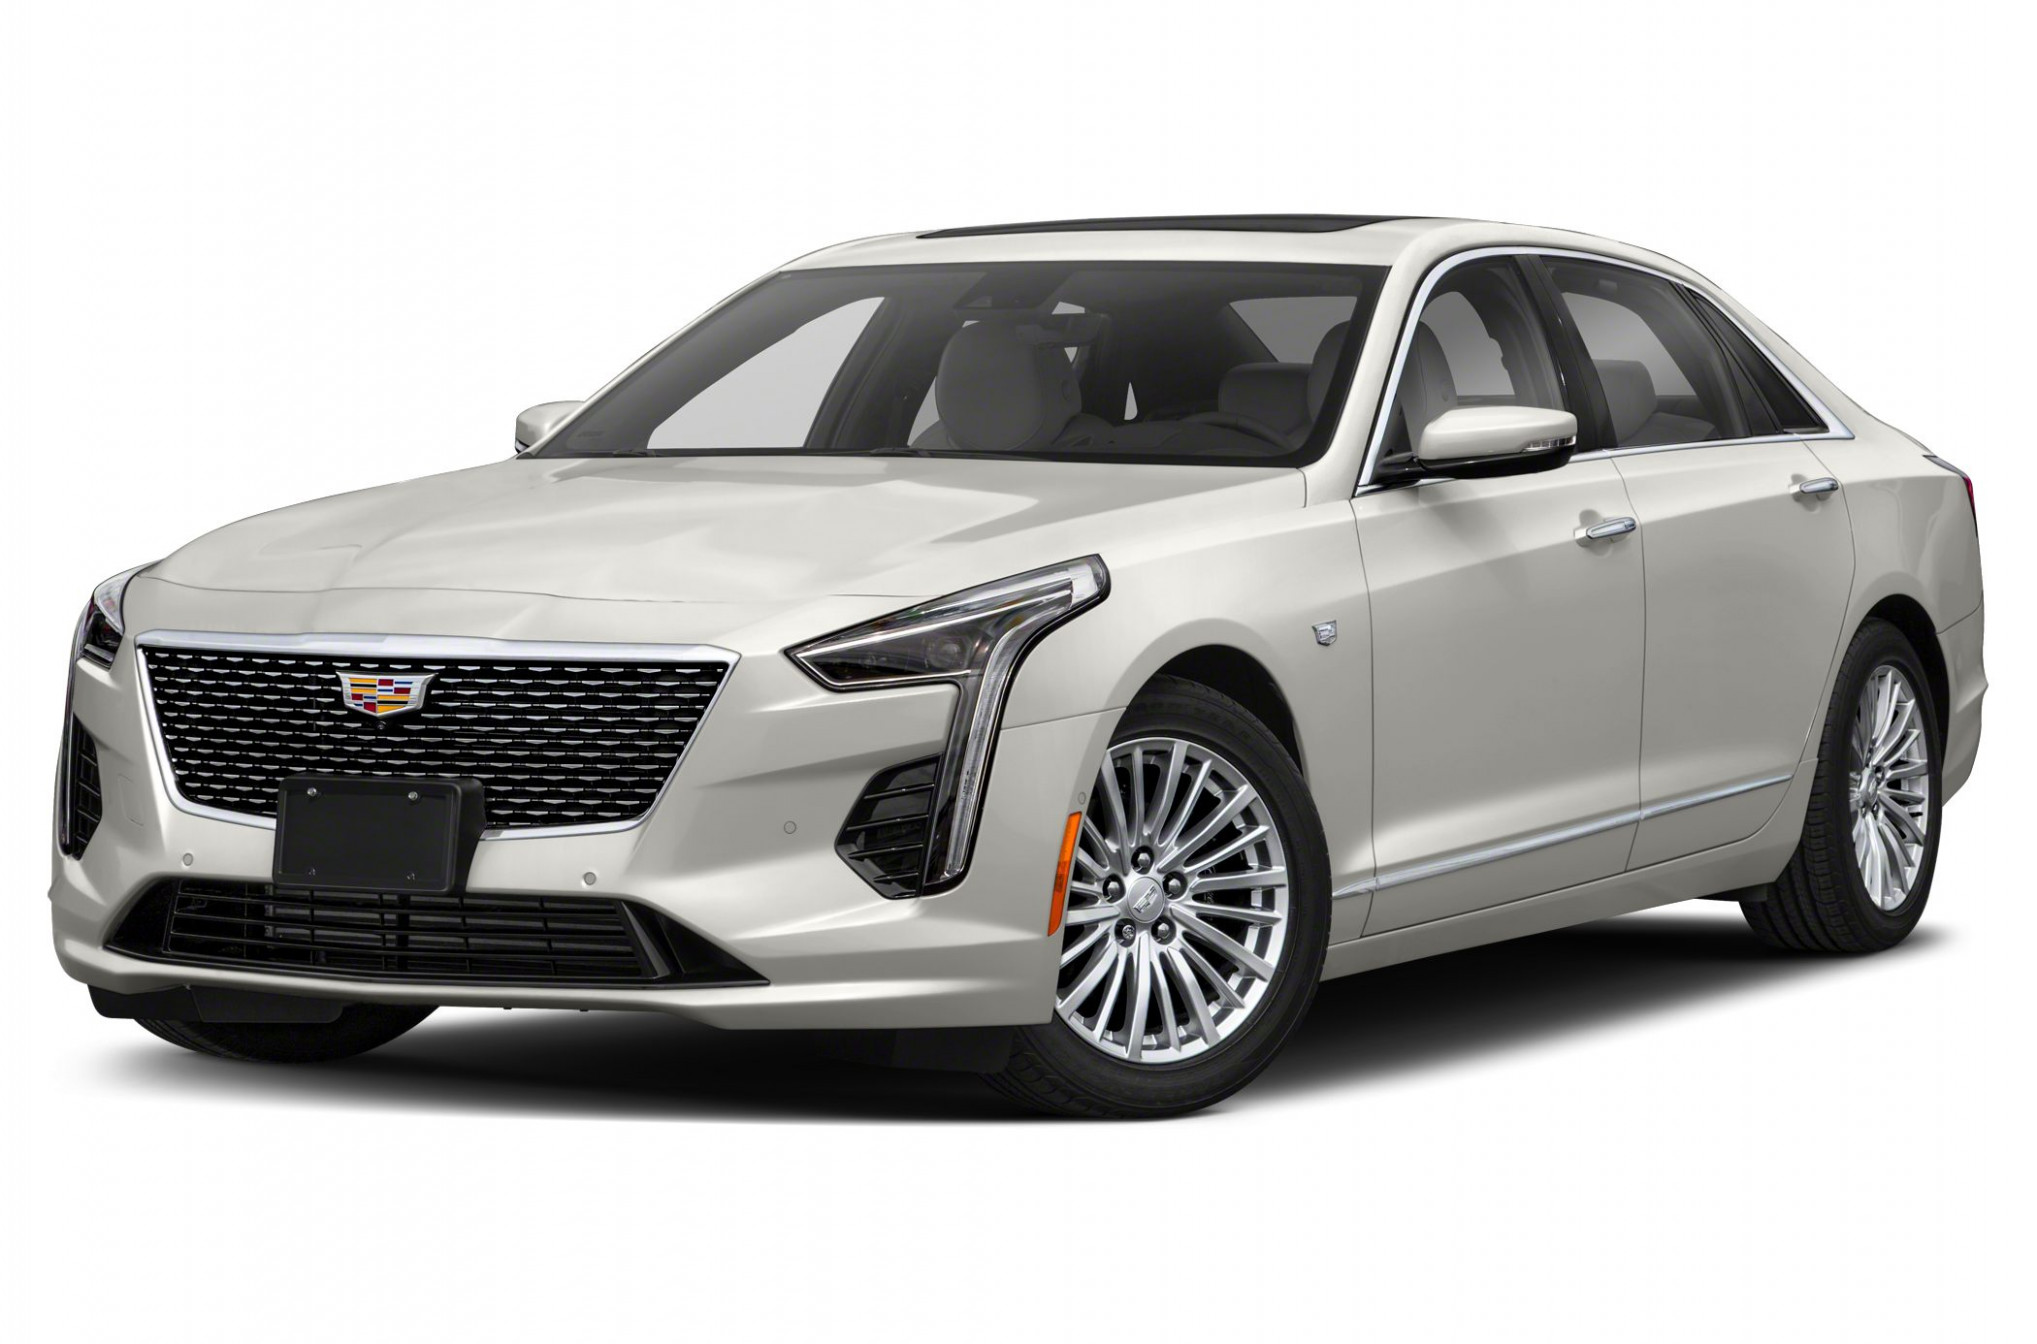 12 Cadillac CT12 Reviews, Specs, Photos - when will the 2020 cadillac ct6 be available